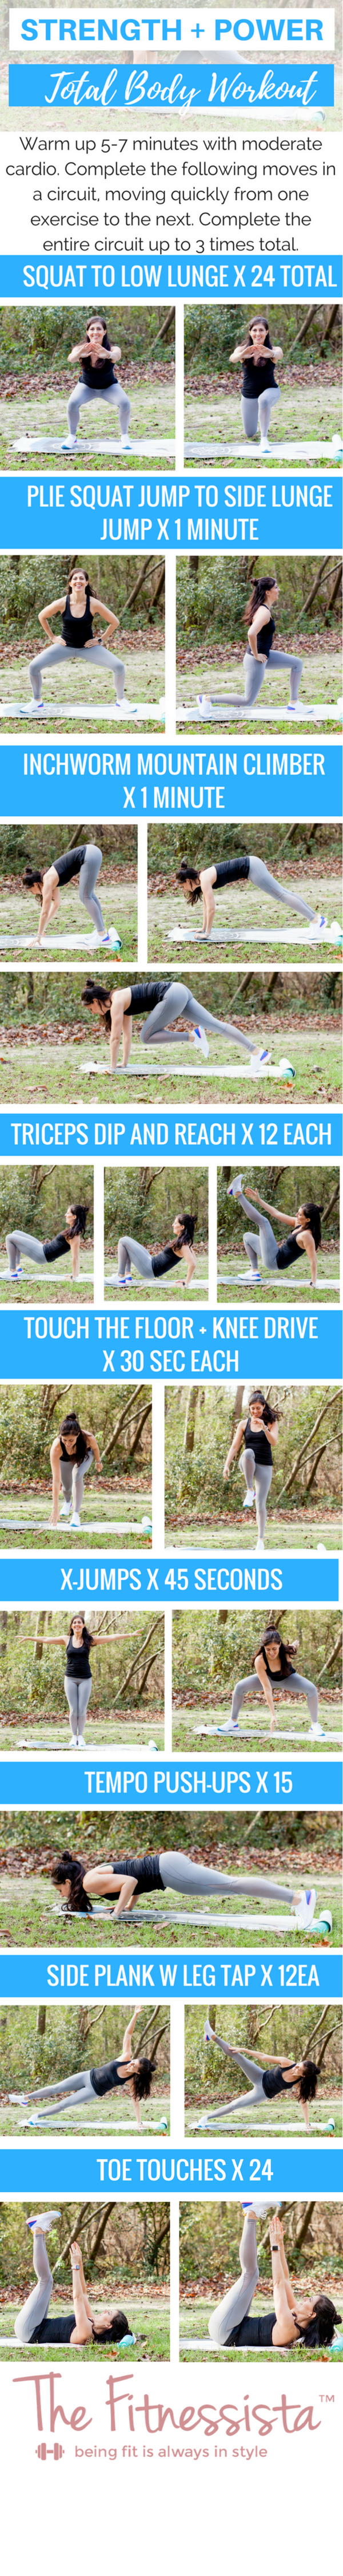 A total body strength and power workout you can do anywhere. Mix up HIIT training with strength for awesome results. fitnessista.com #strengthworkout #circuitworkout